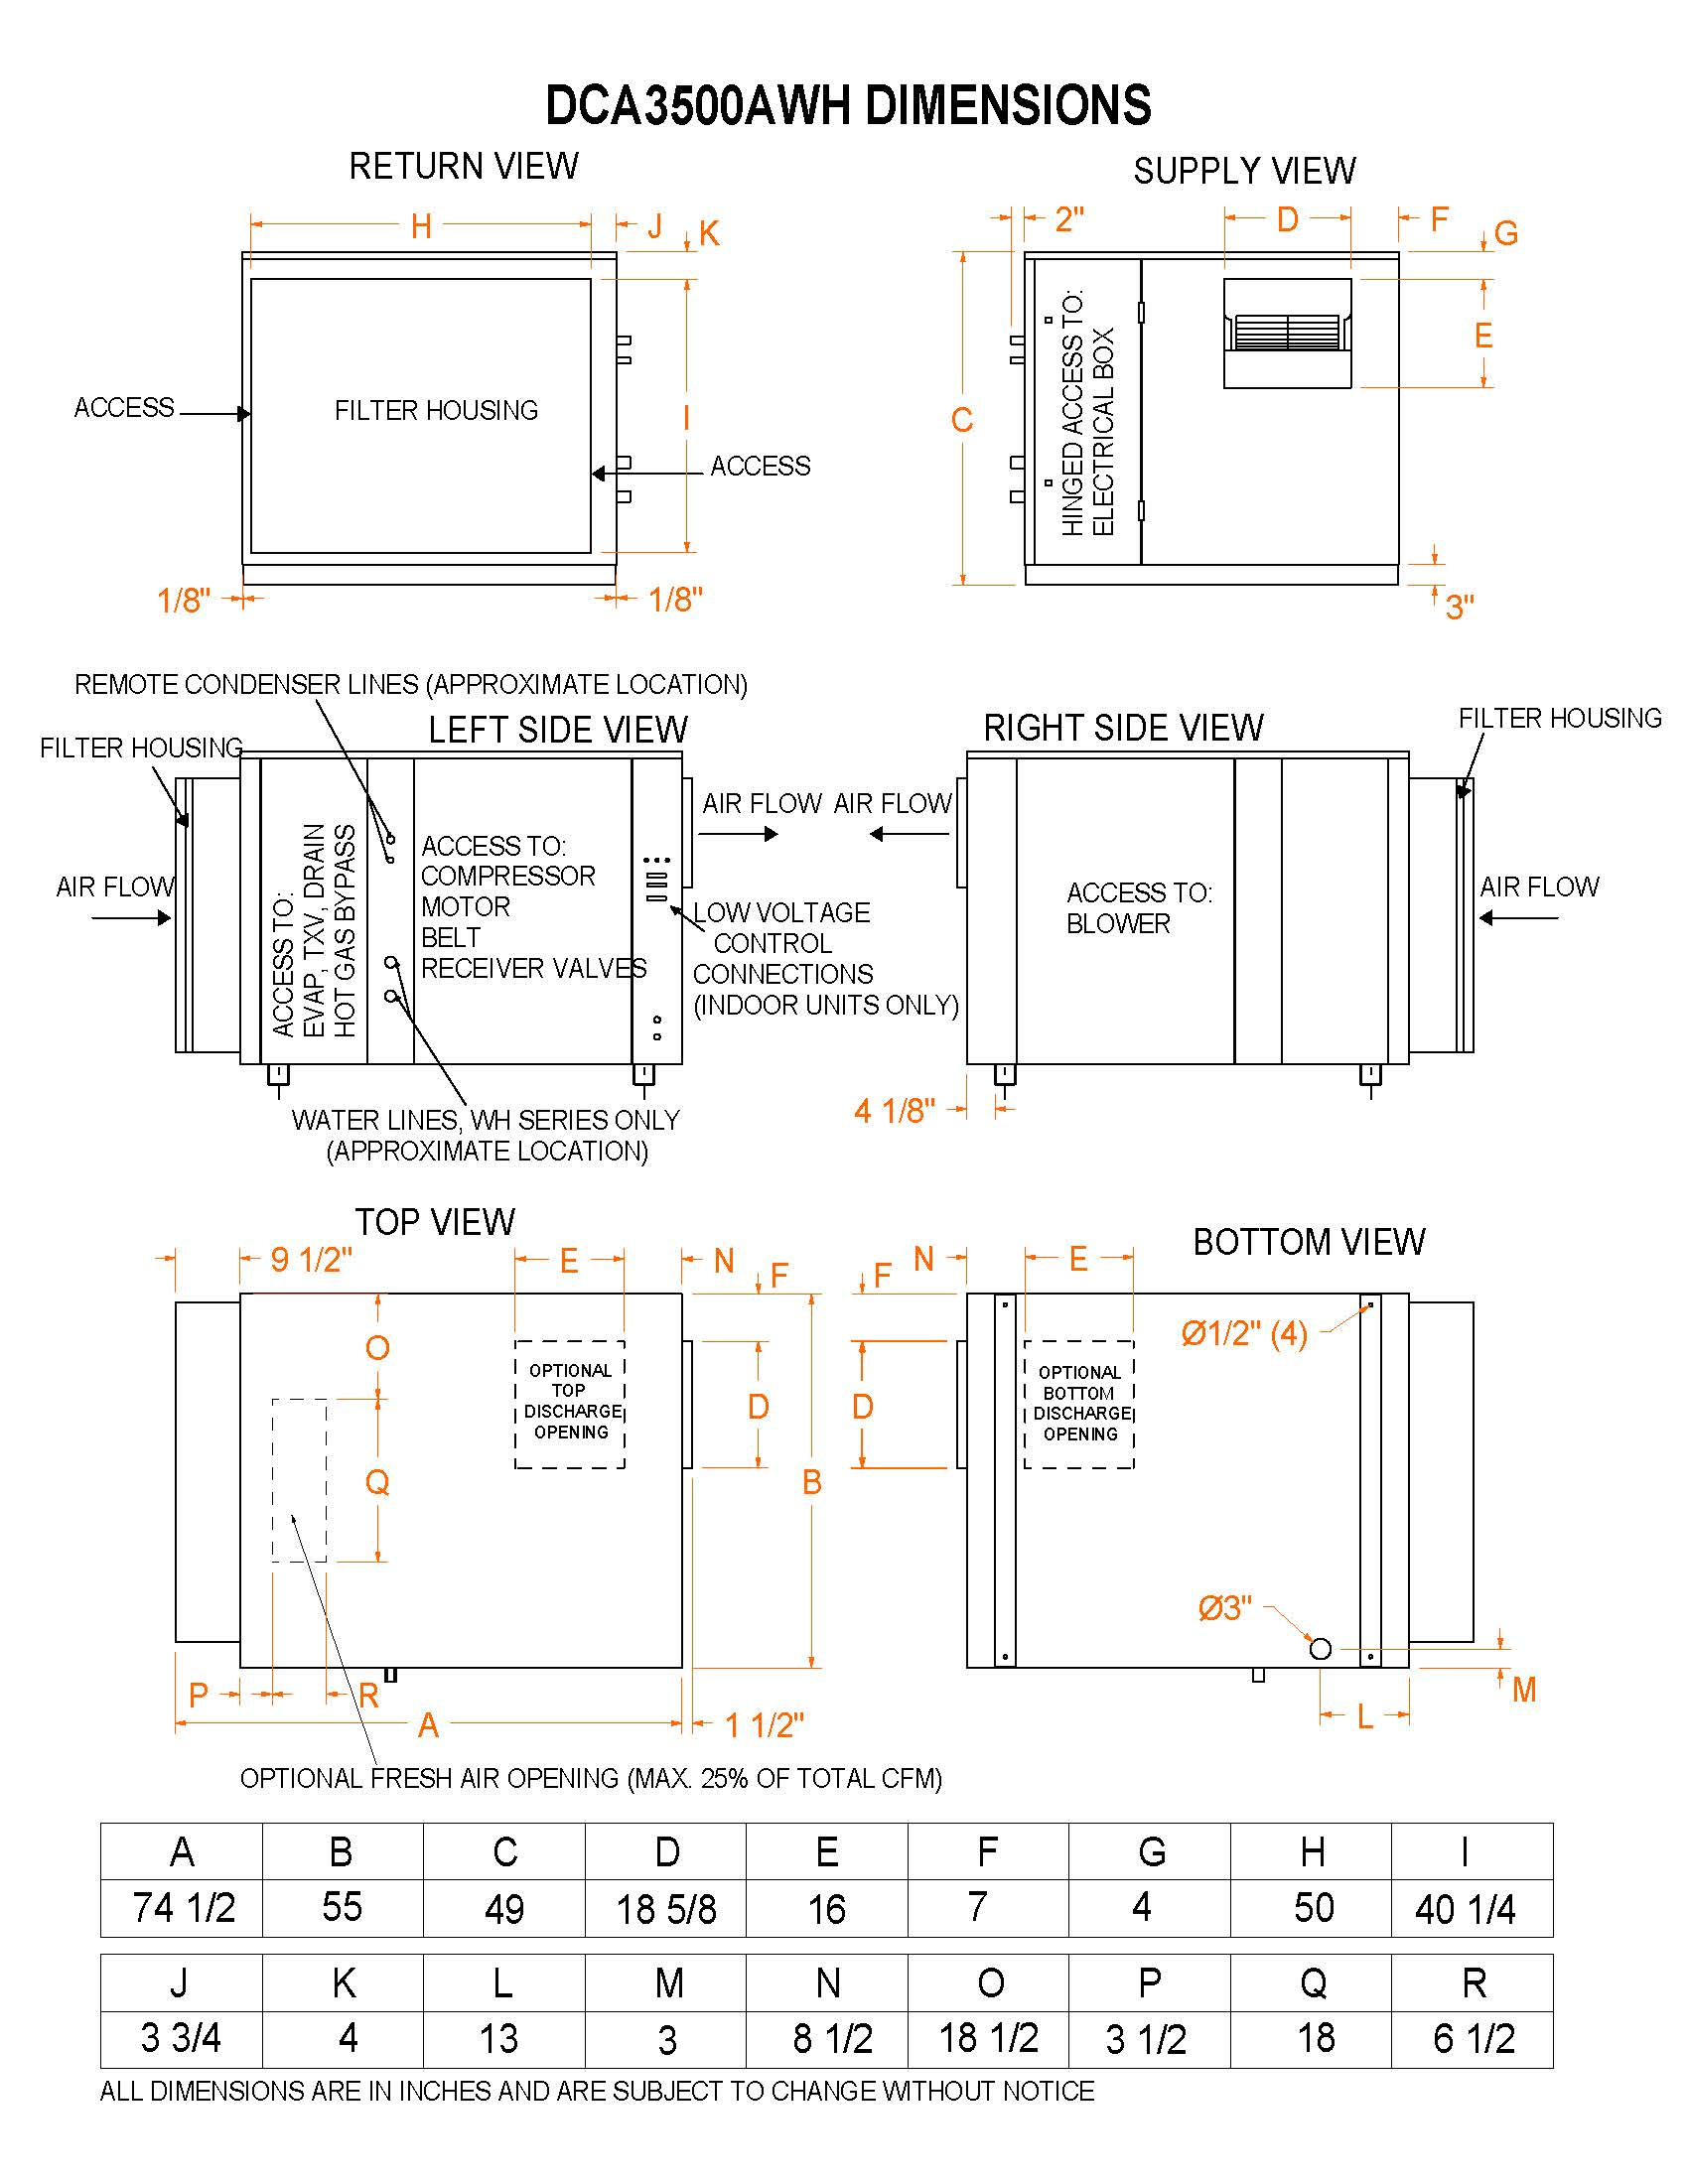 model dca3500awh, water heating assist dehumidifier on Timer Wiring Diagram 3500awh hood dimensions � dca 3500awh dimensions